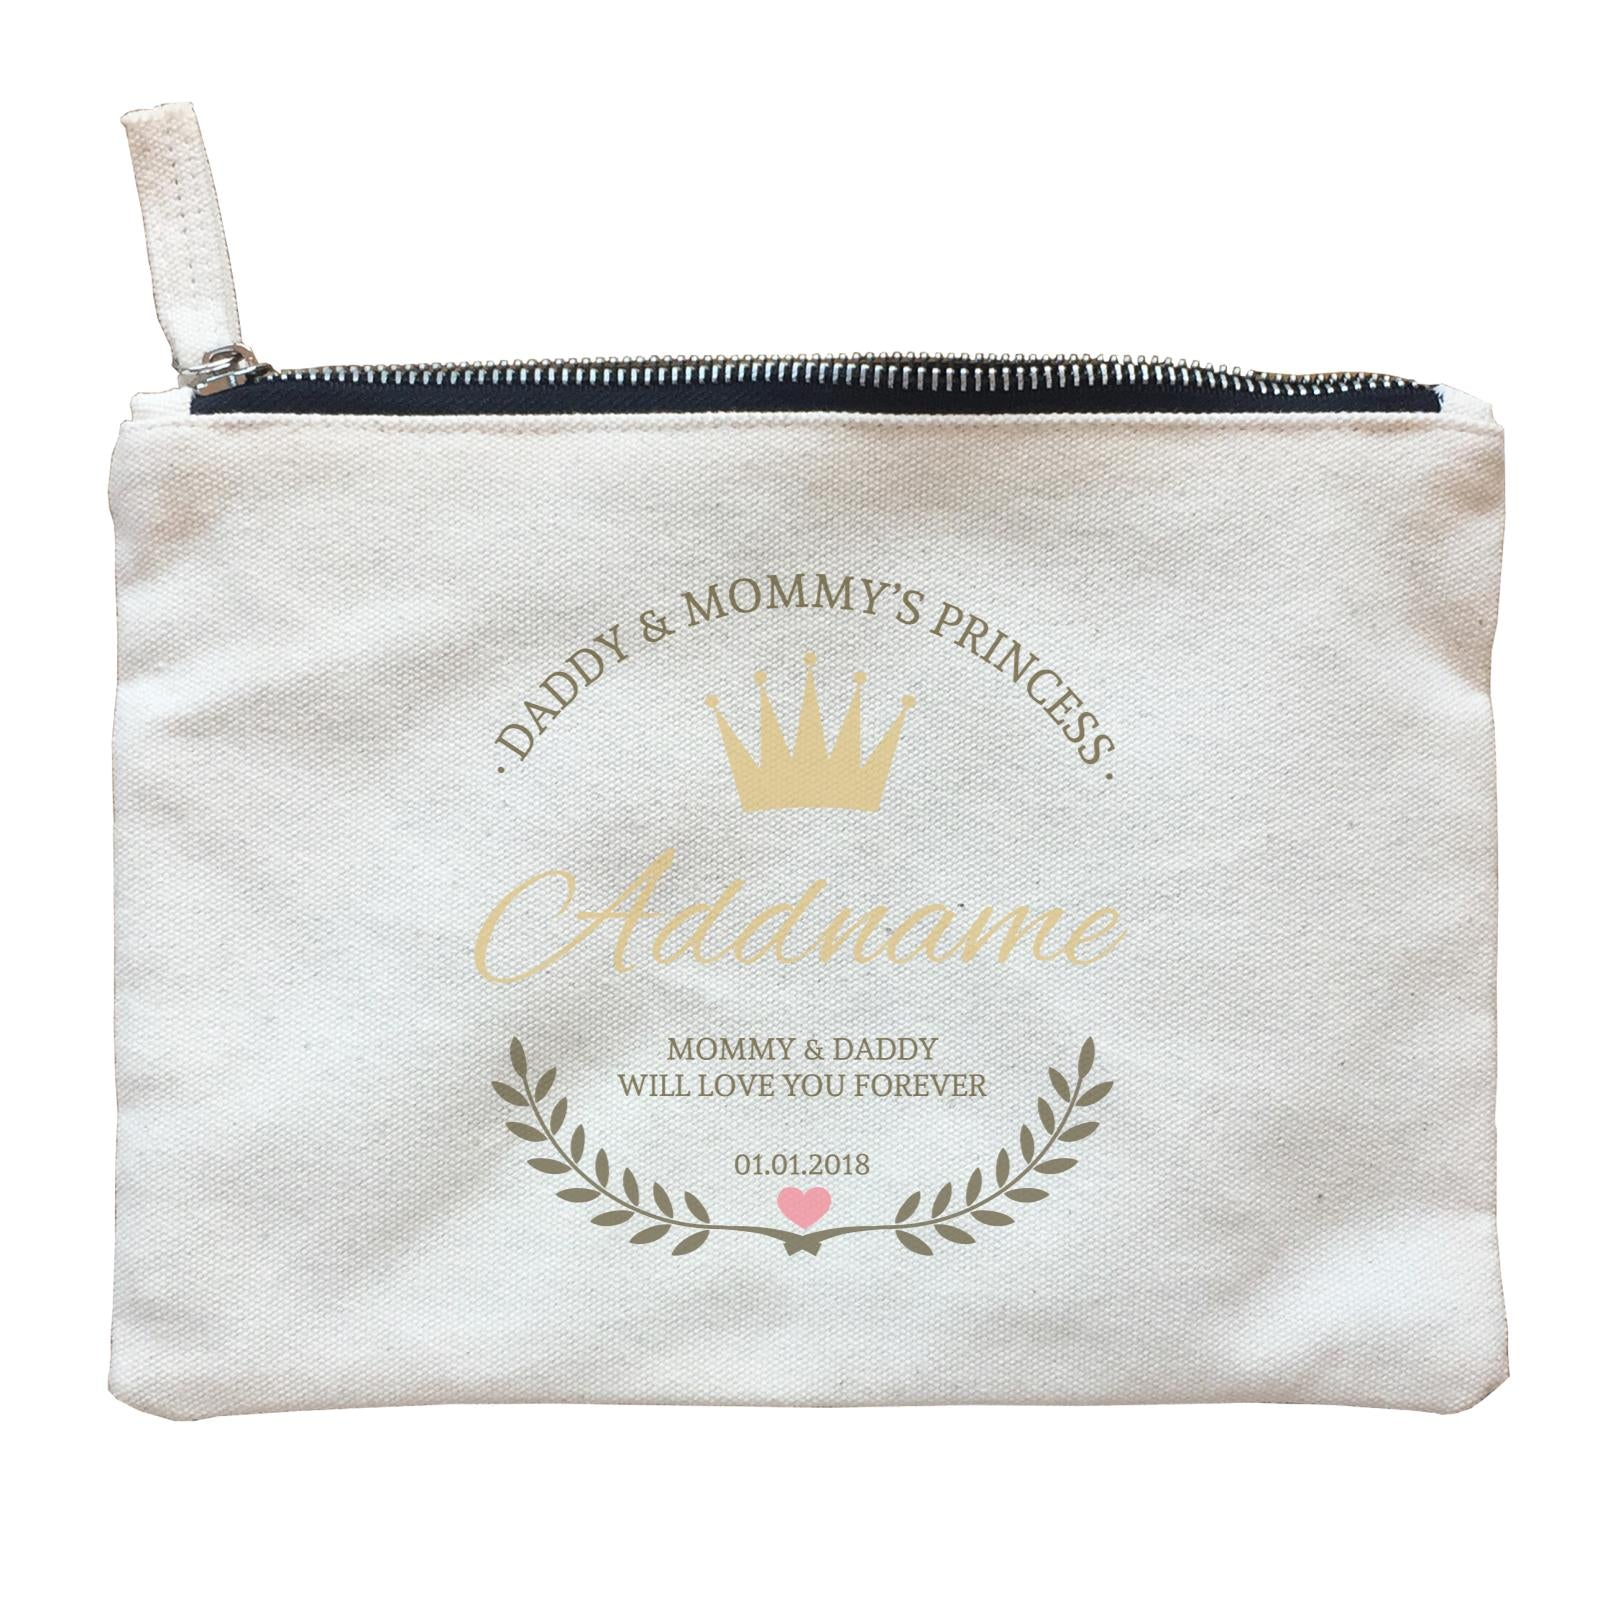 Daddy and Mommy's Princess with Tiara Wreath Personazliable with Name Text and Date Zipper Pouch